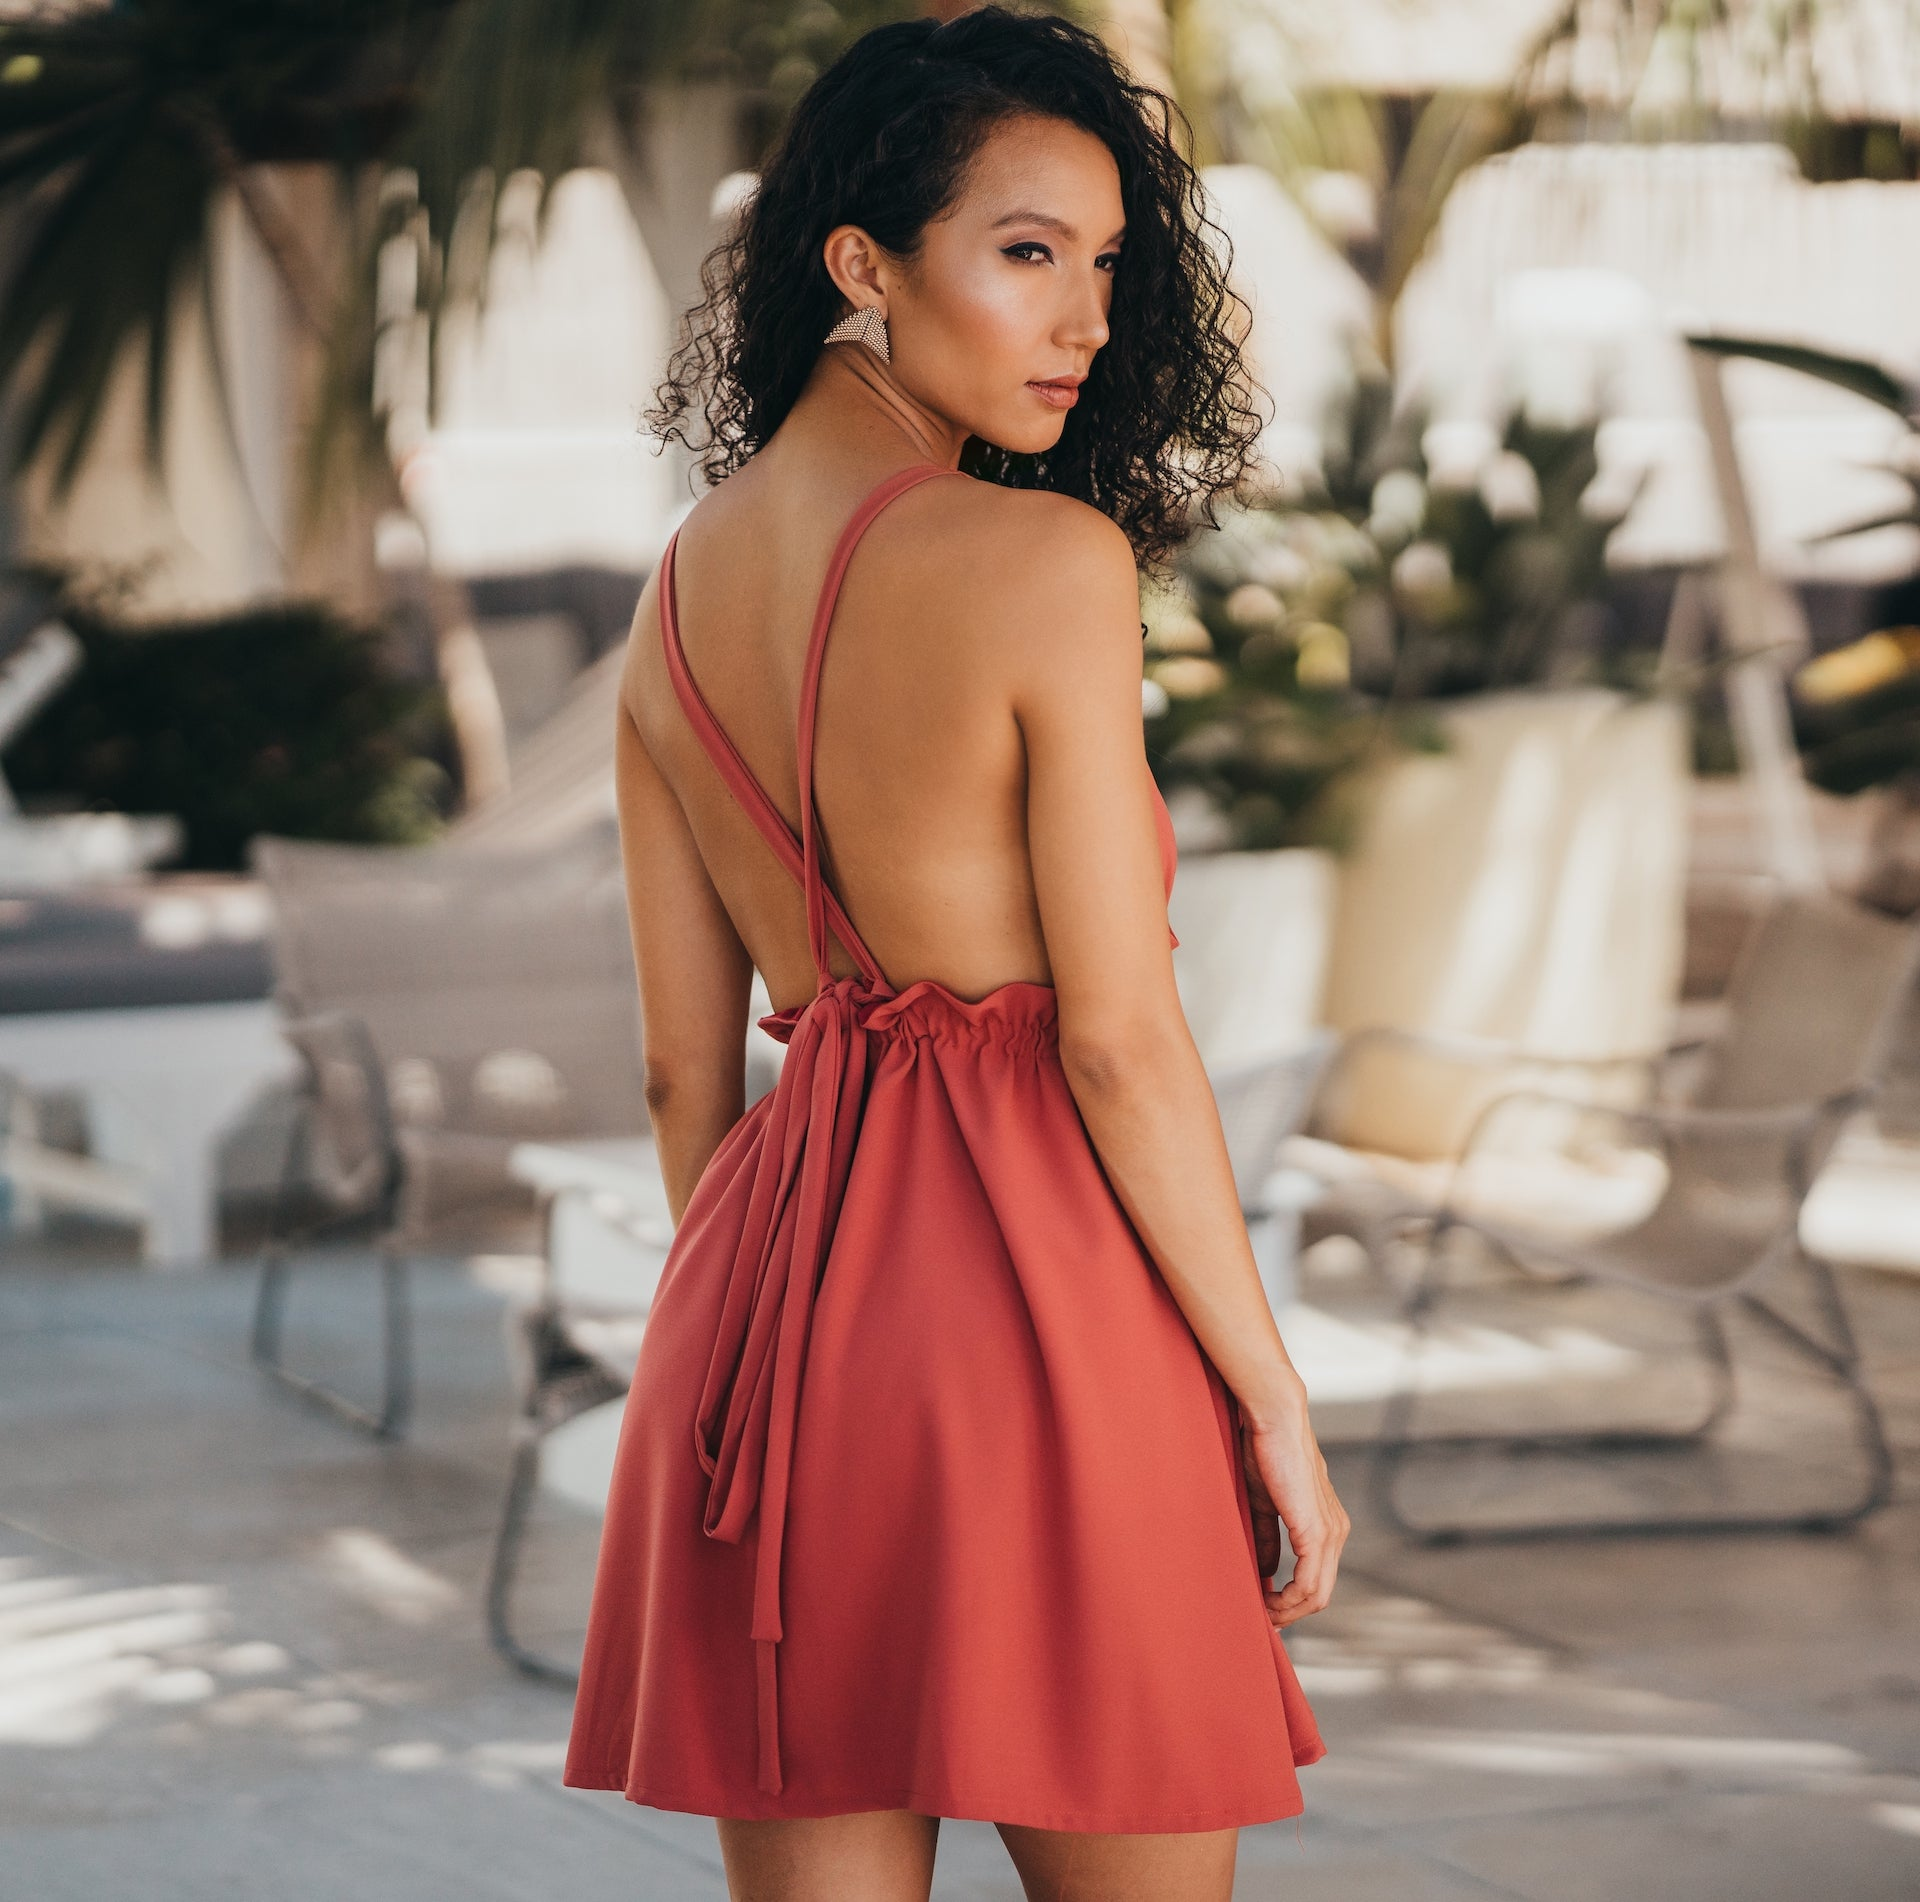 Obsidian deep plunge, backless mini dress